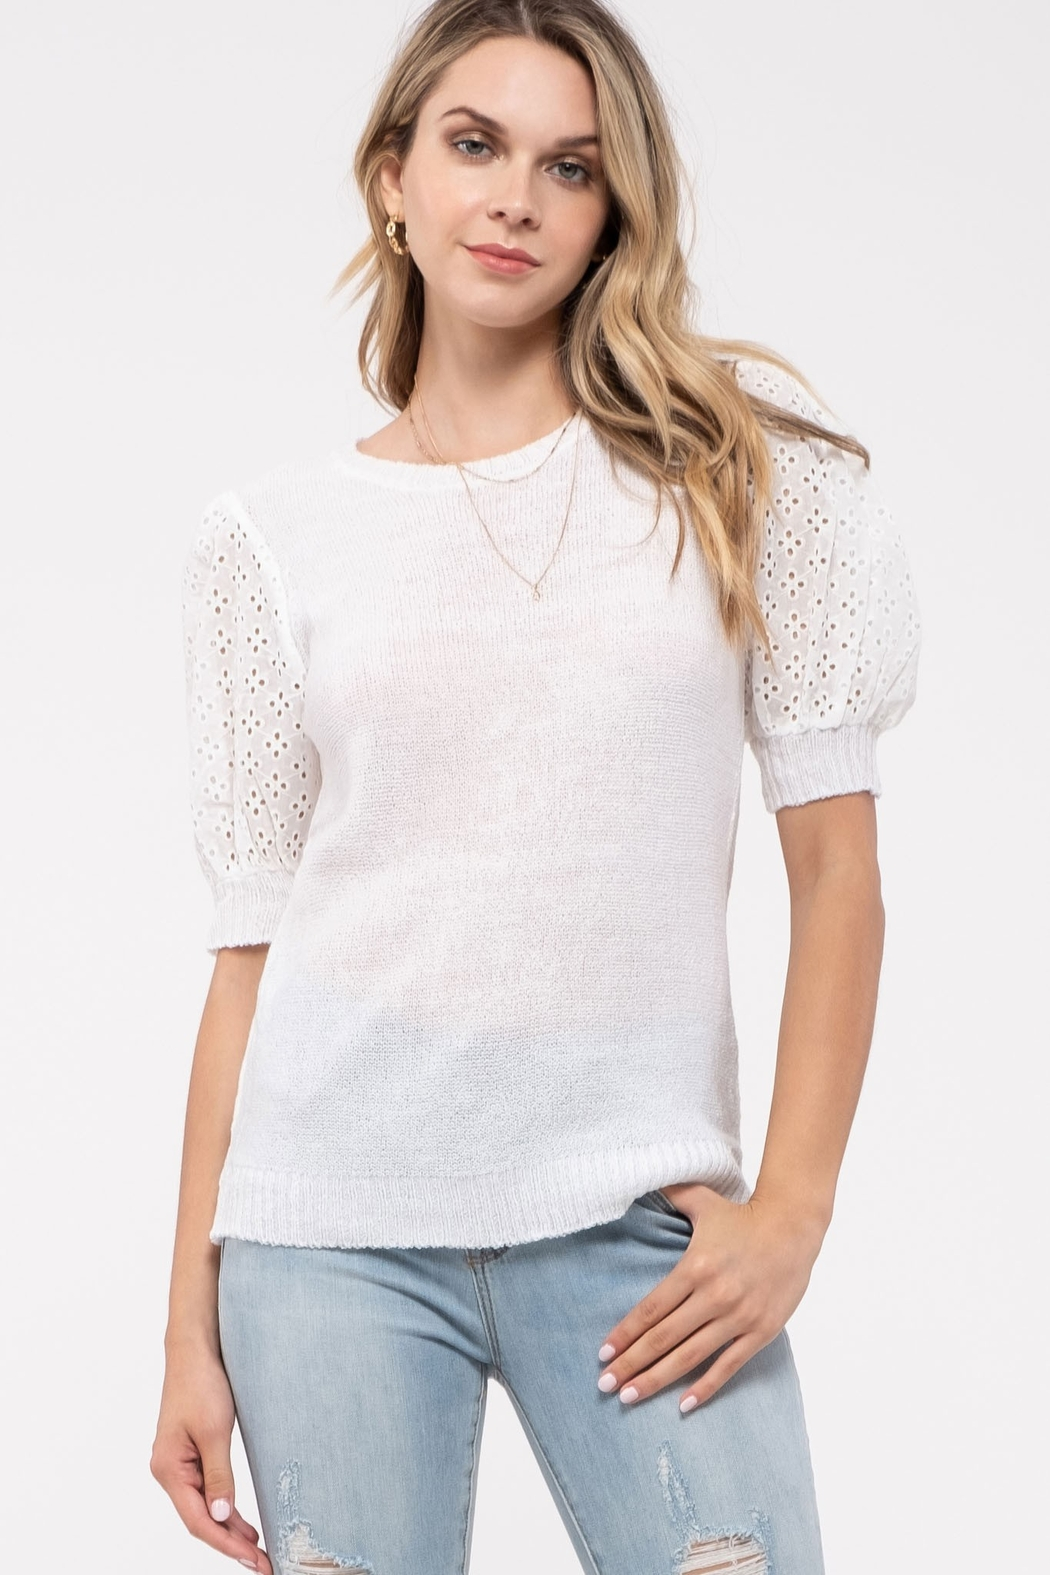 blu Pepper  Contrast Sleeve Sweater Top - Front Full Image